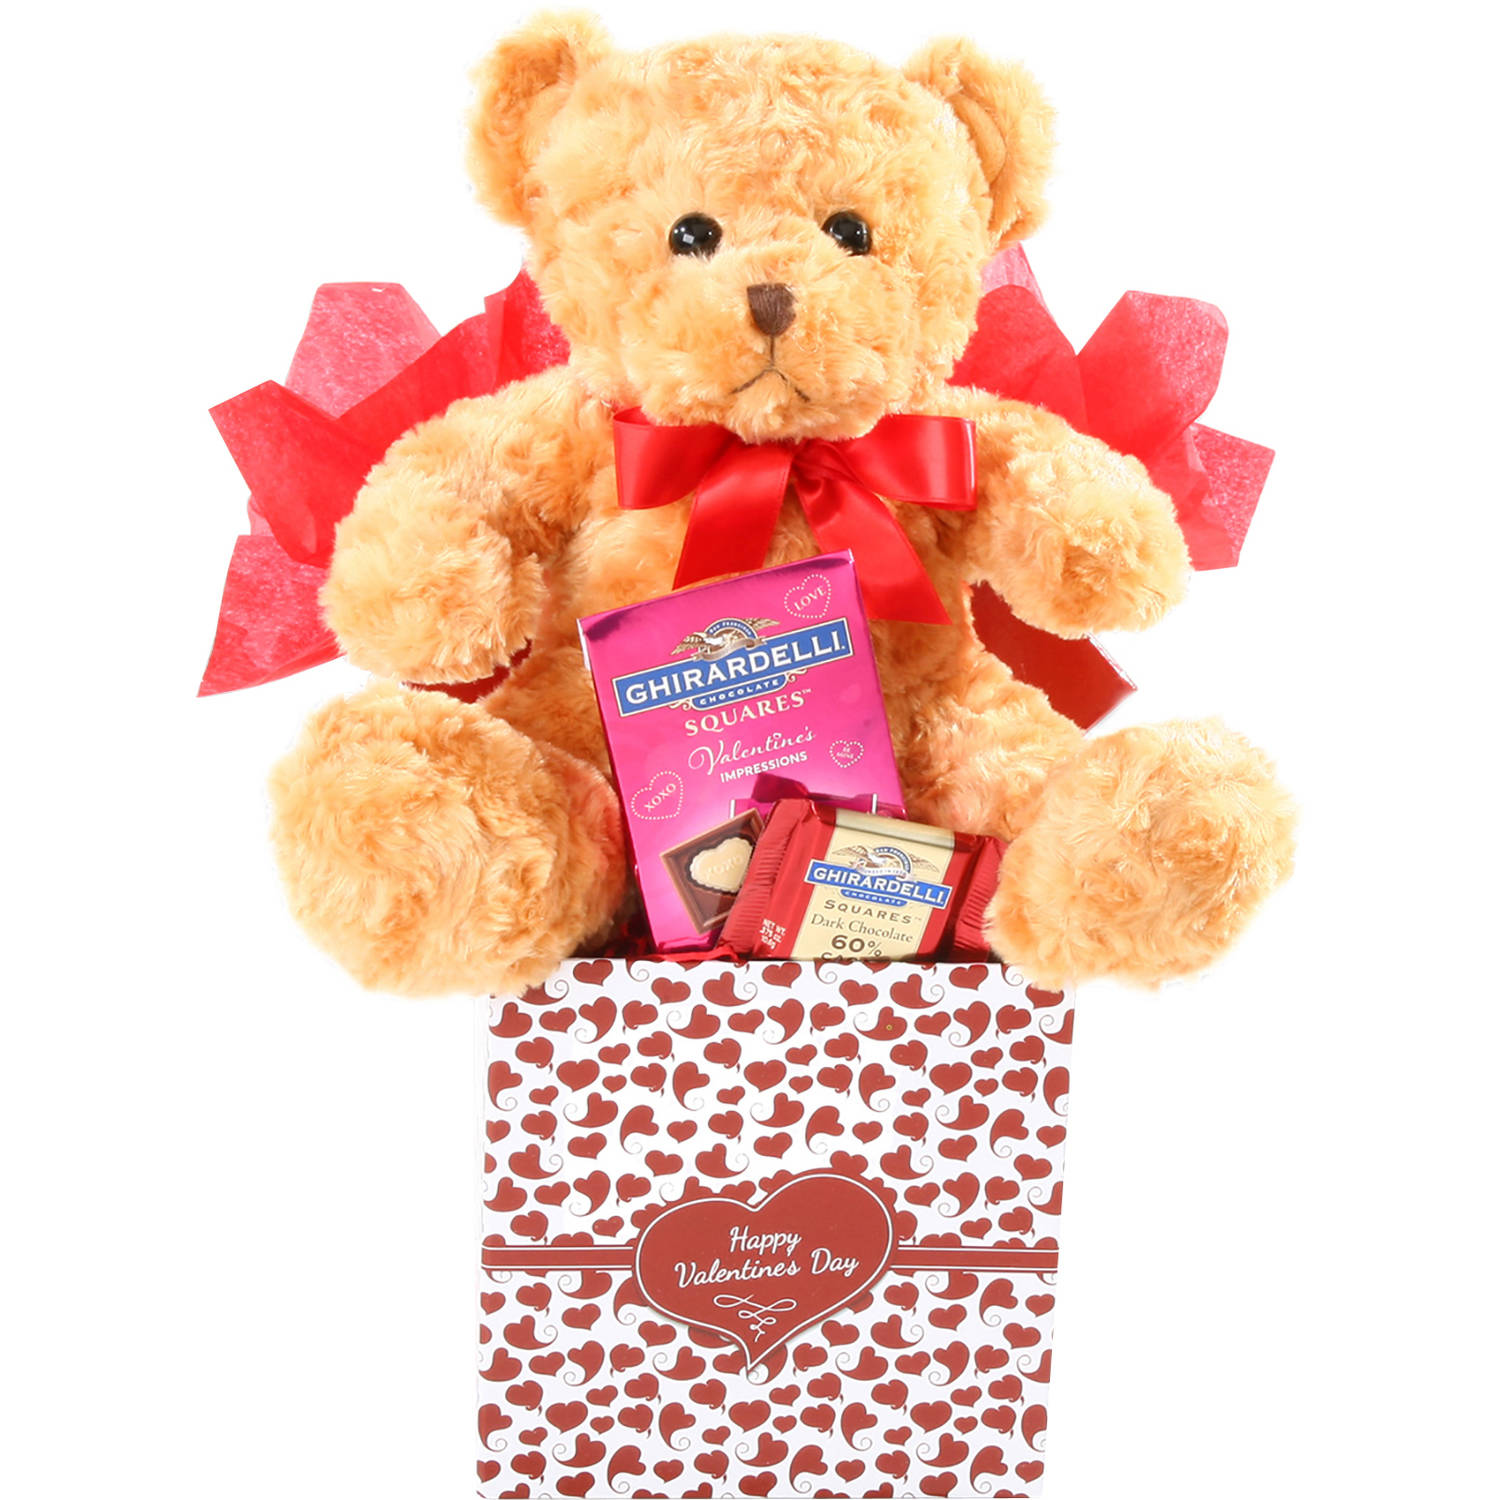 Get Well Soon Teddy Bear Walmart Gift Basket Drop Shipping